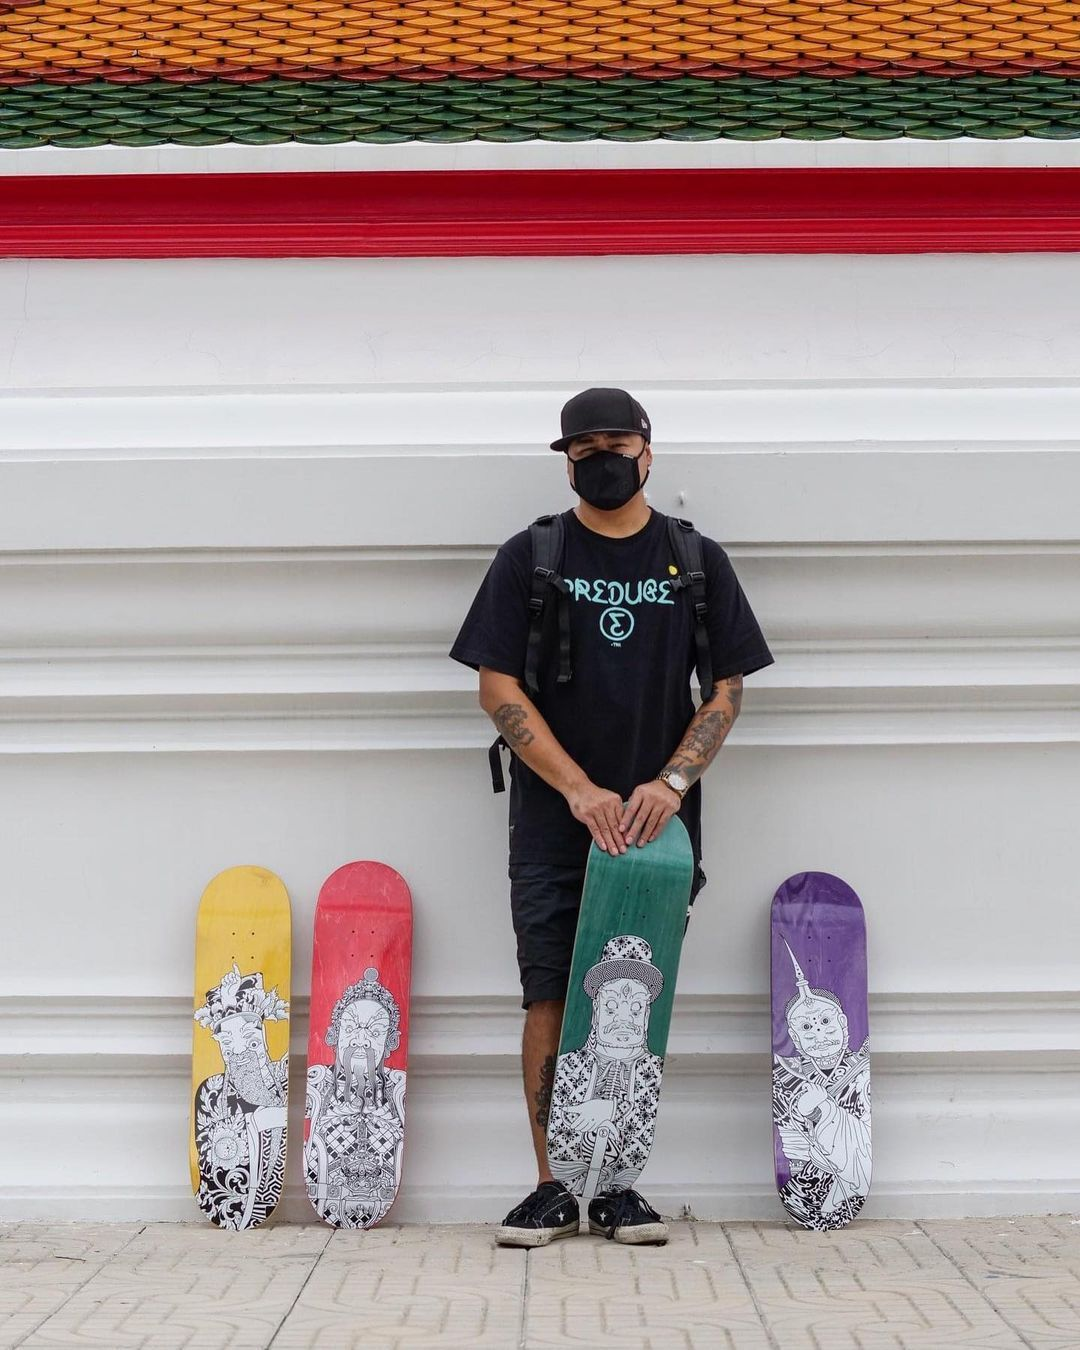 Stone Giants Deck Series By TR For Preduce Skateboards 12